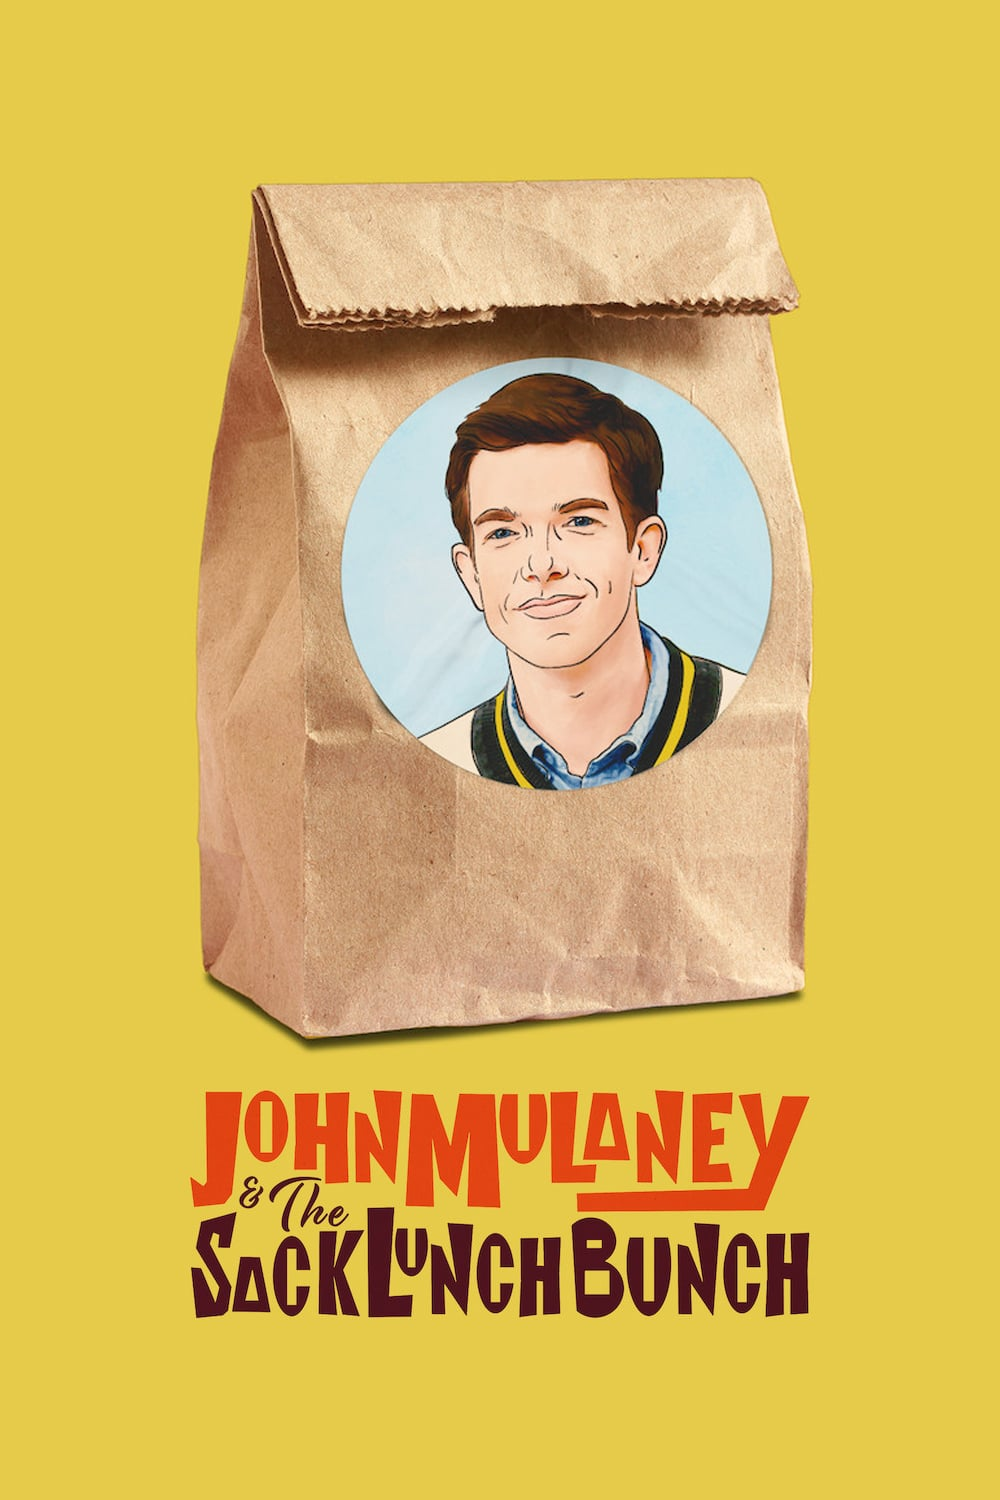 thumb John Mulaney & The Sack Lunch Bunch